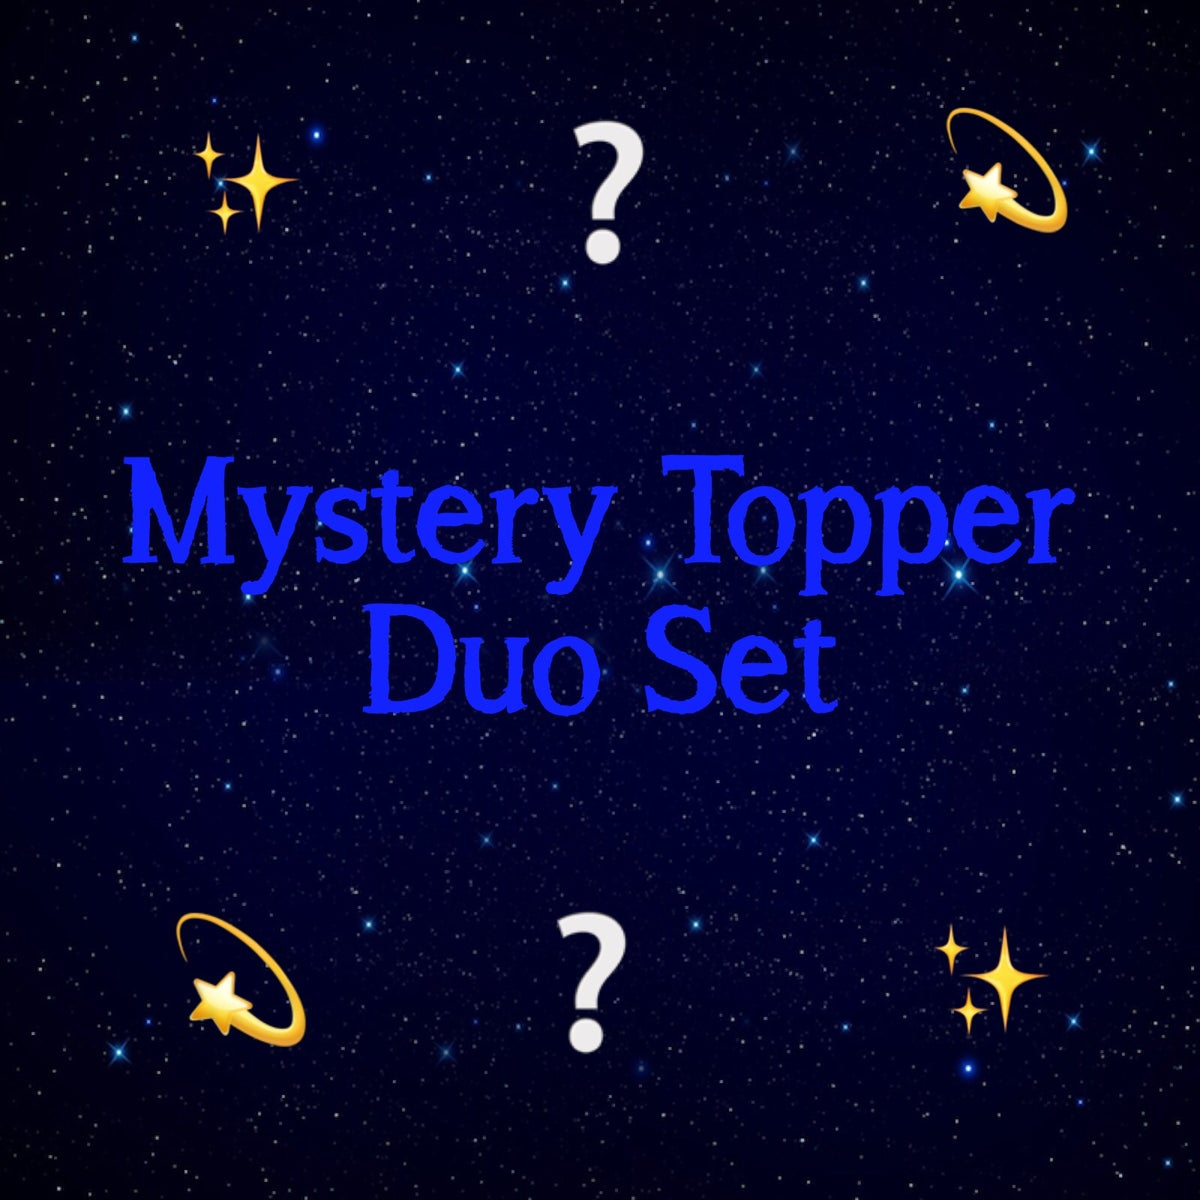 Image of Mystery Topper Duo Set